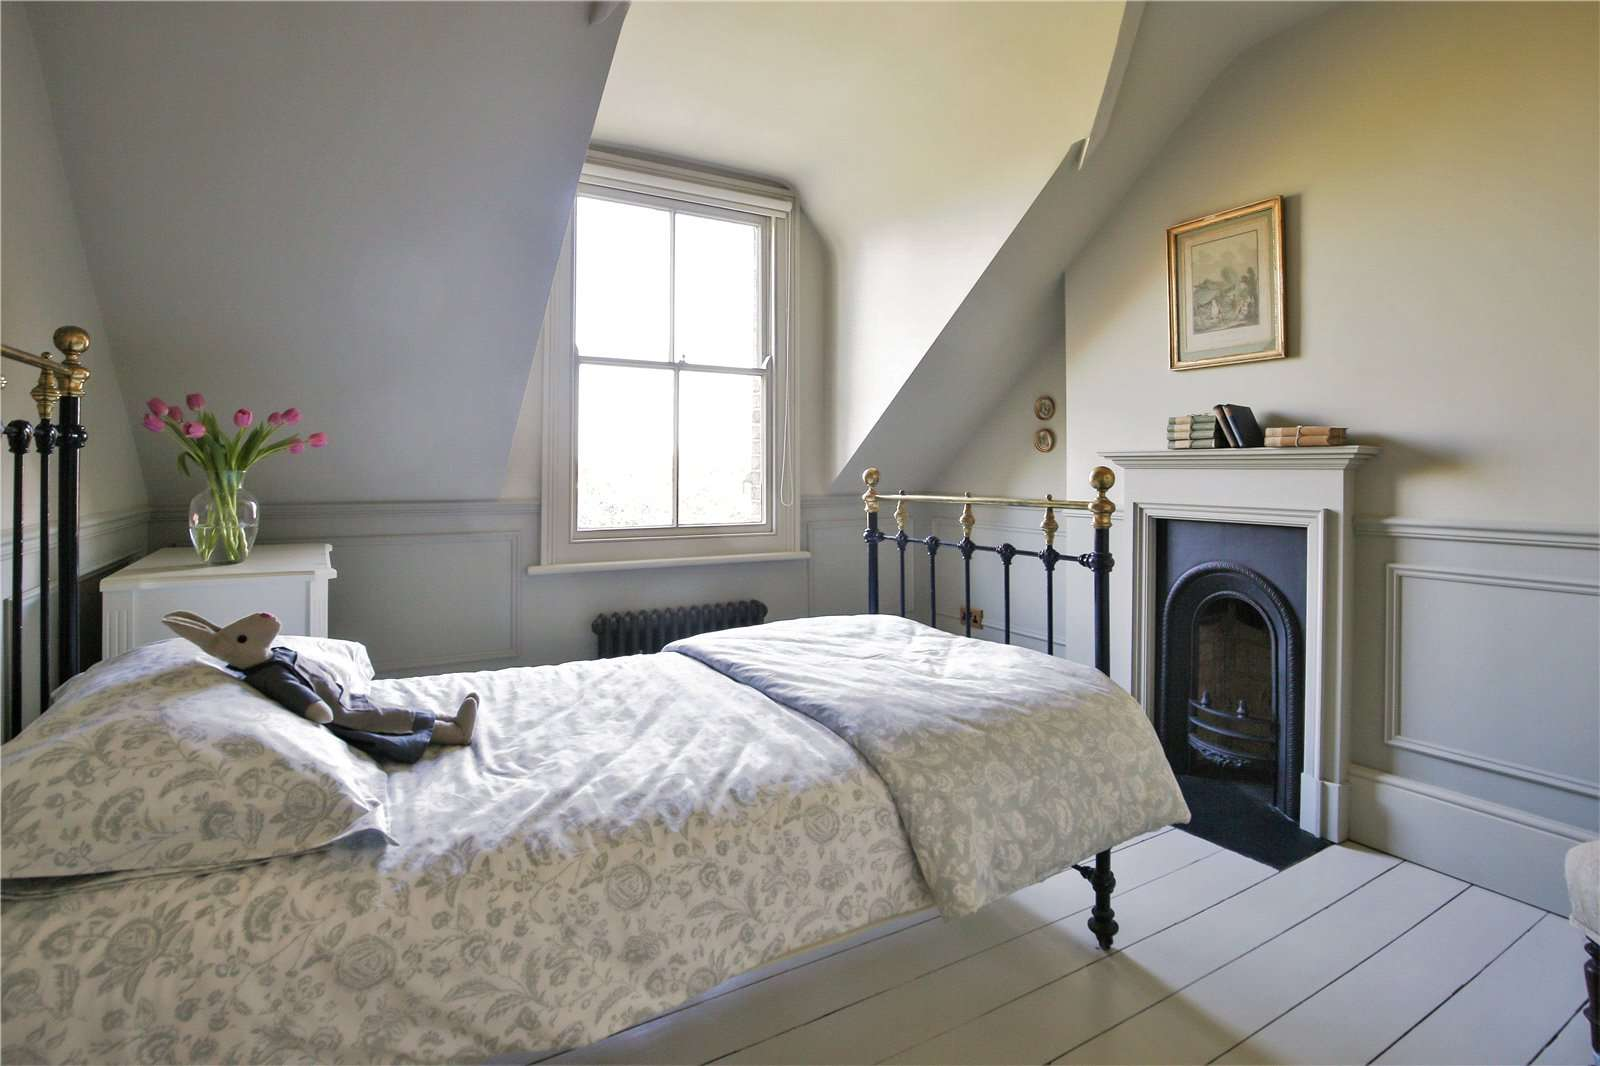 An elegantly-proportioned Victorian house on Woodstock Road in Oxford - Image Gallery 18 - Bedroom